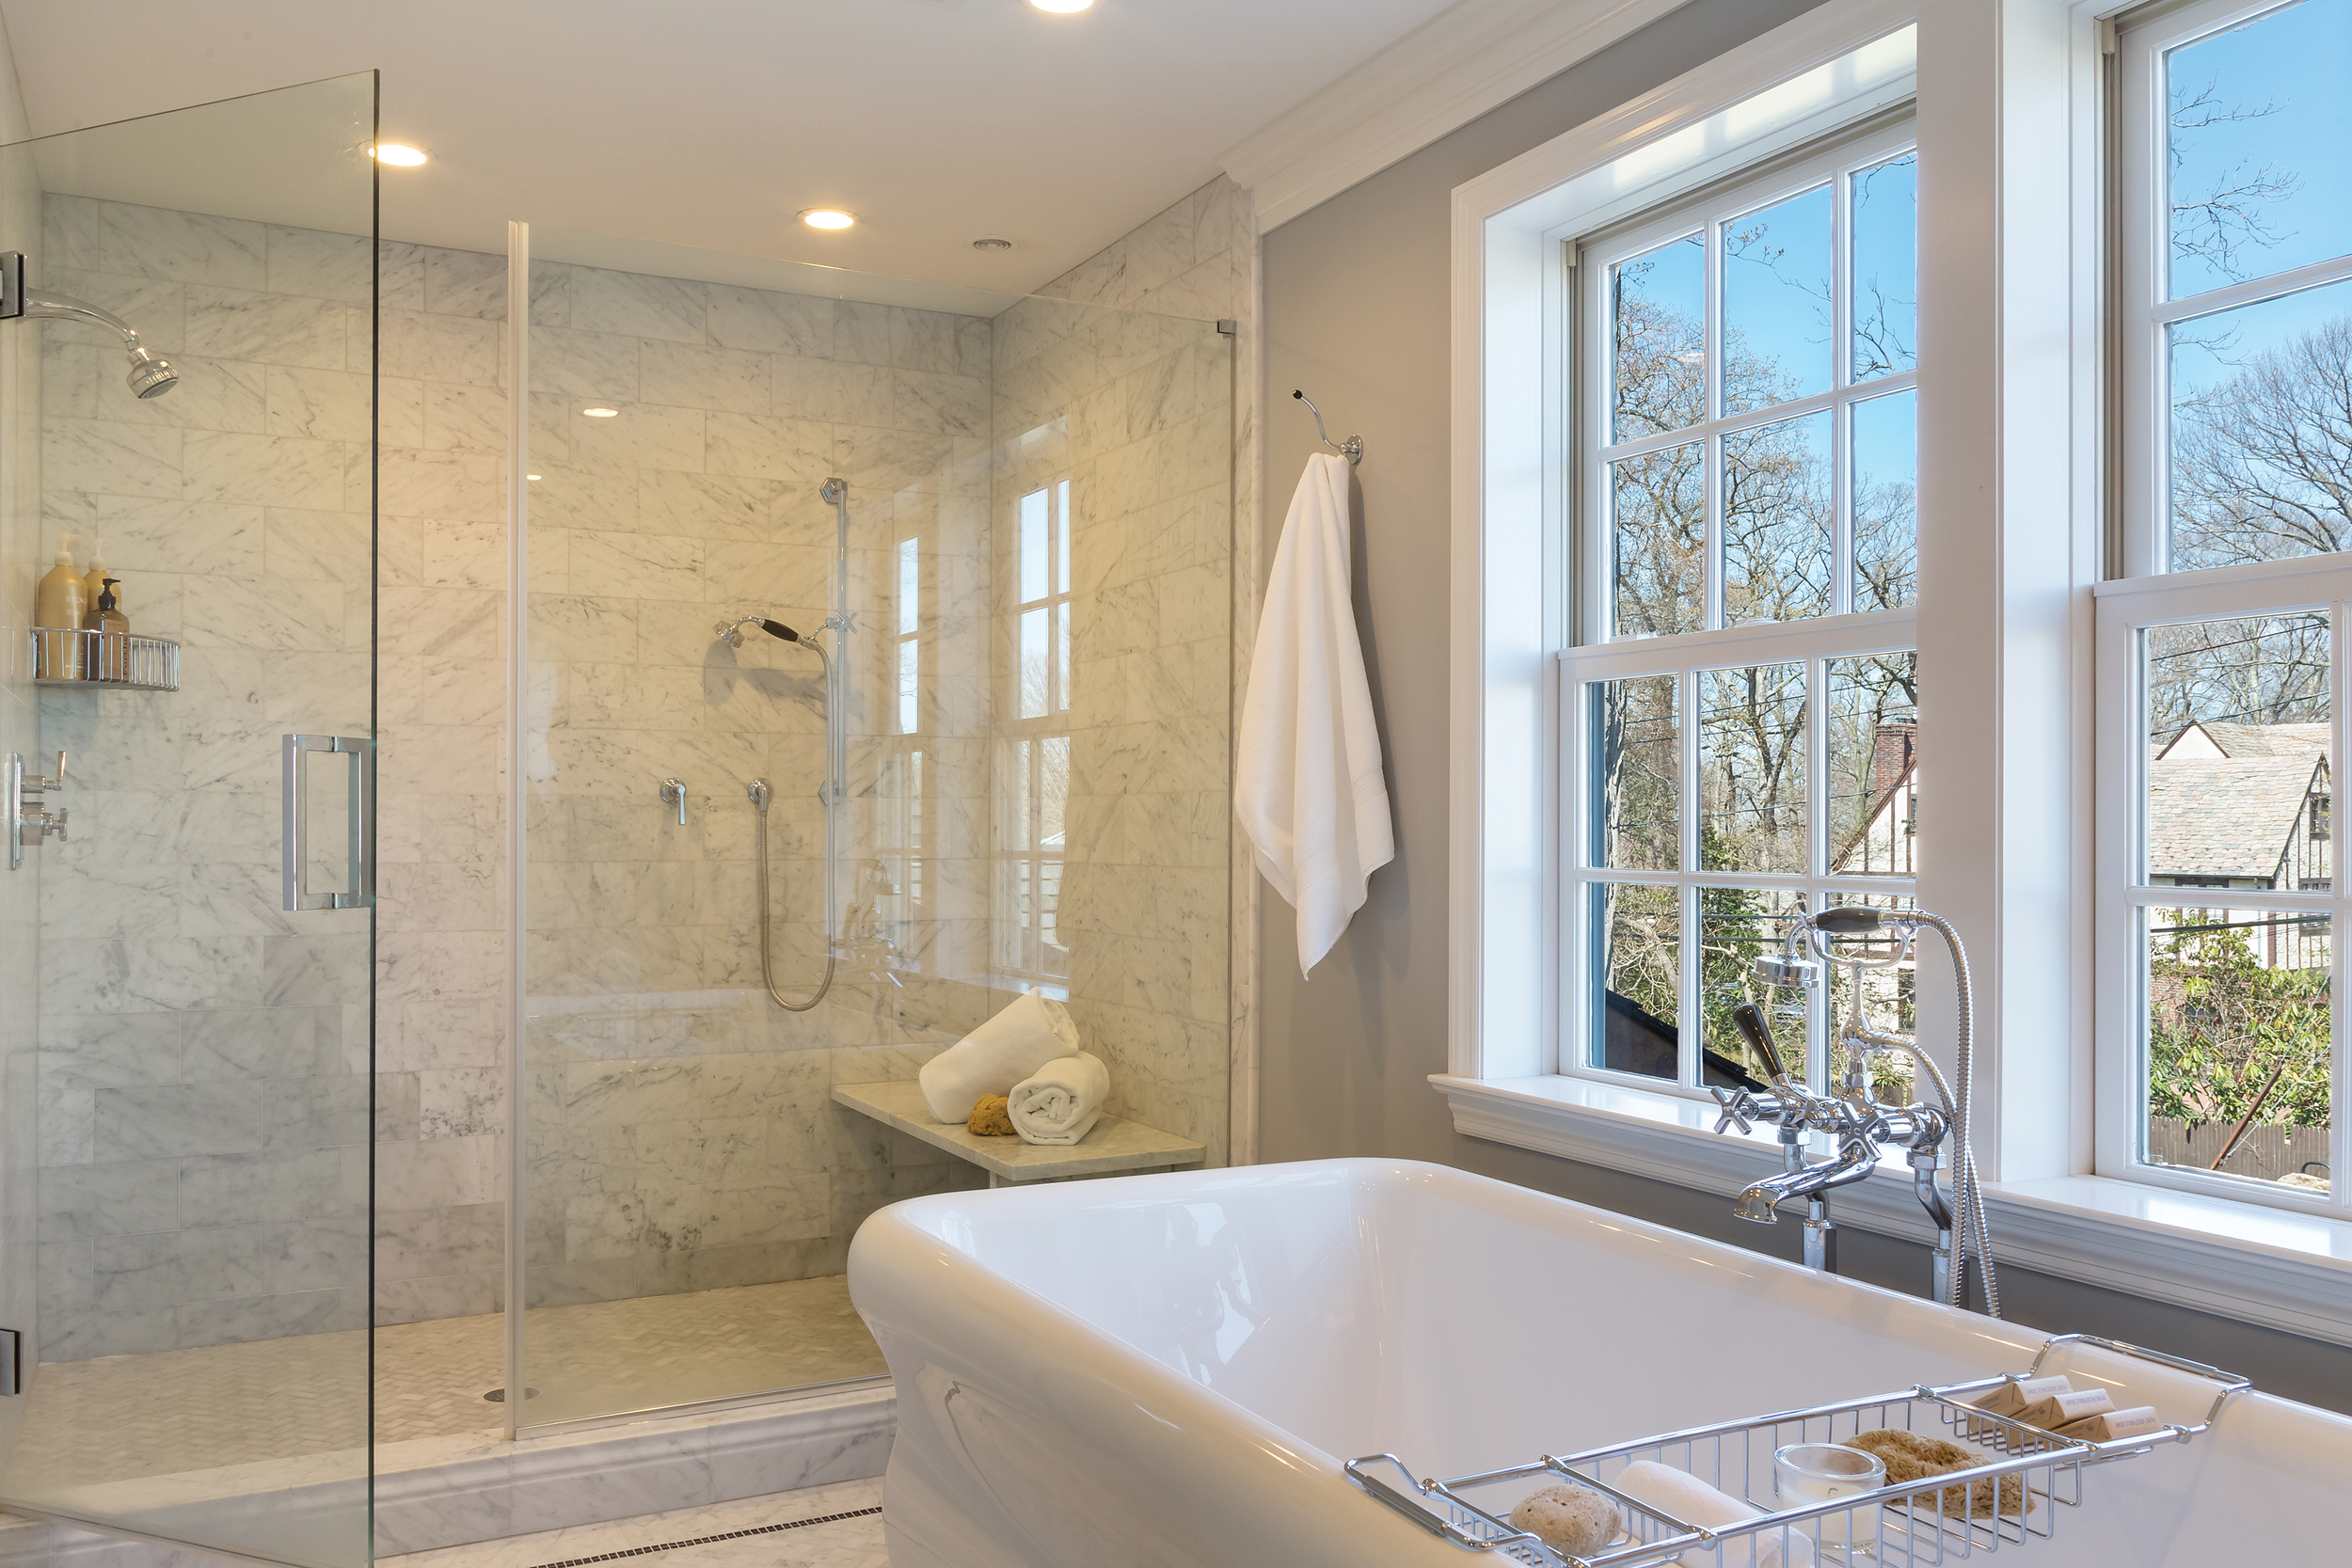 Tom Fox designed a spacious shower that runs the width of the room as he did with the vanity wall. Custom-designed Carrara marble throughout with a seamless glass enclosure creates optimal visual space. At one end is a showerhead; at the other, a hand-held shower is flexible whether standing or sitting.